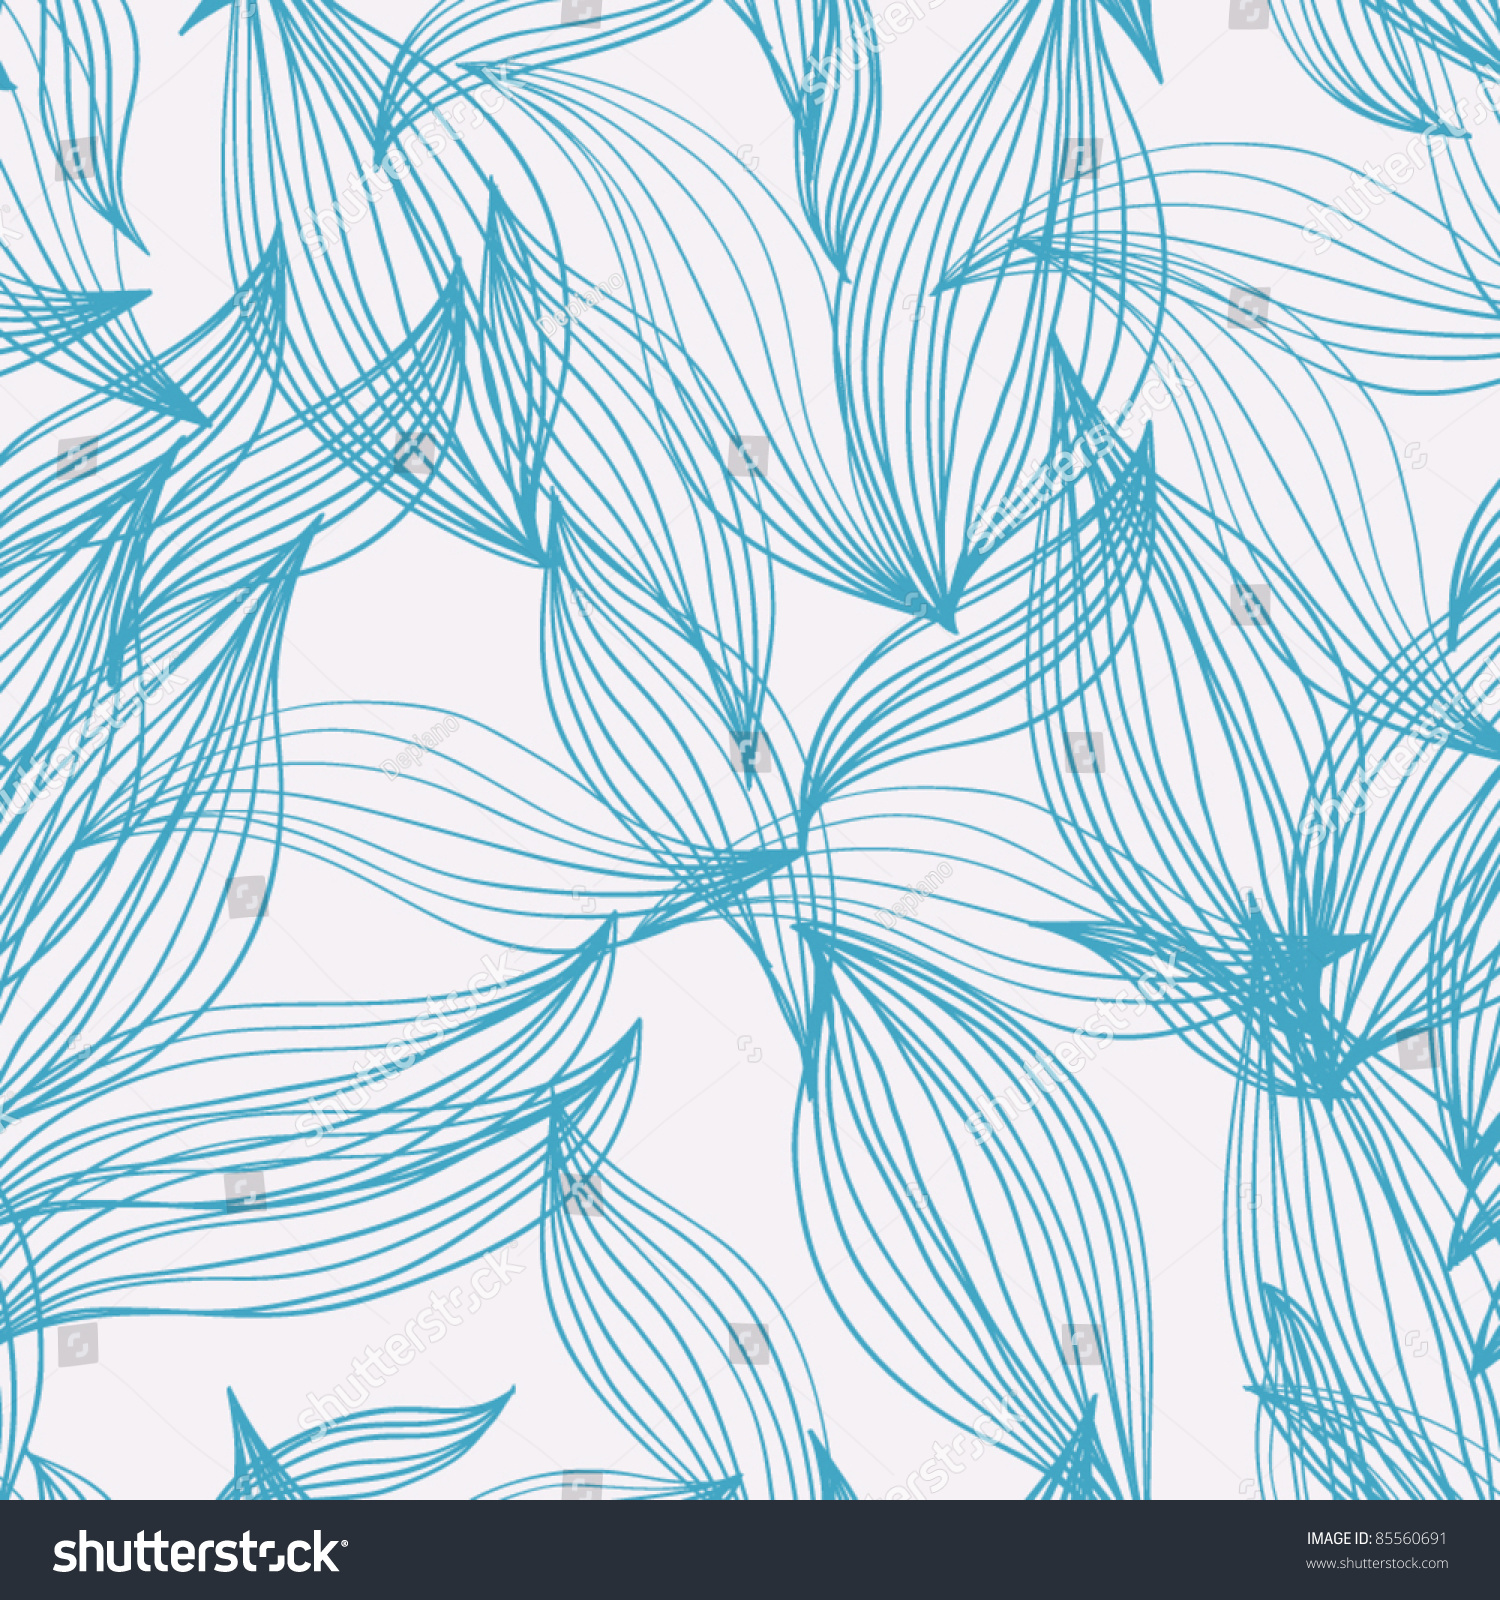 Colorful Seamless Abstract Winter Pattern, Waves